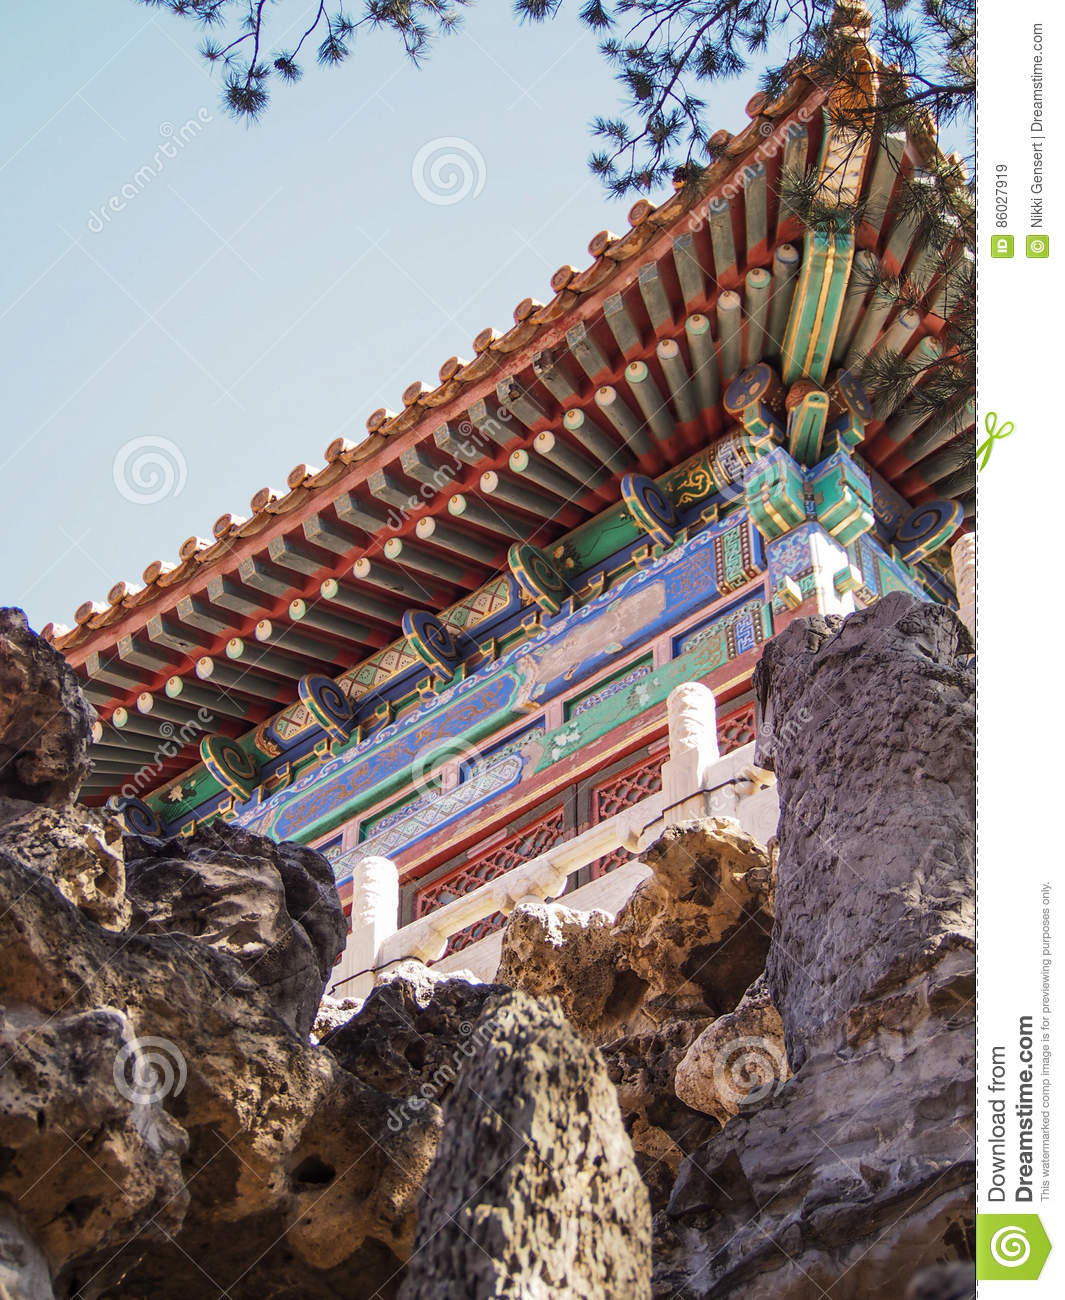 Architectural Detail at Forbidden City Beijing China